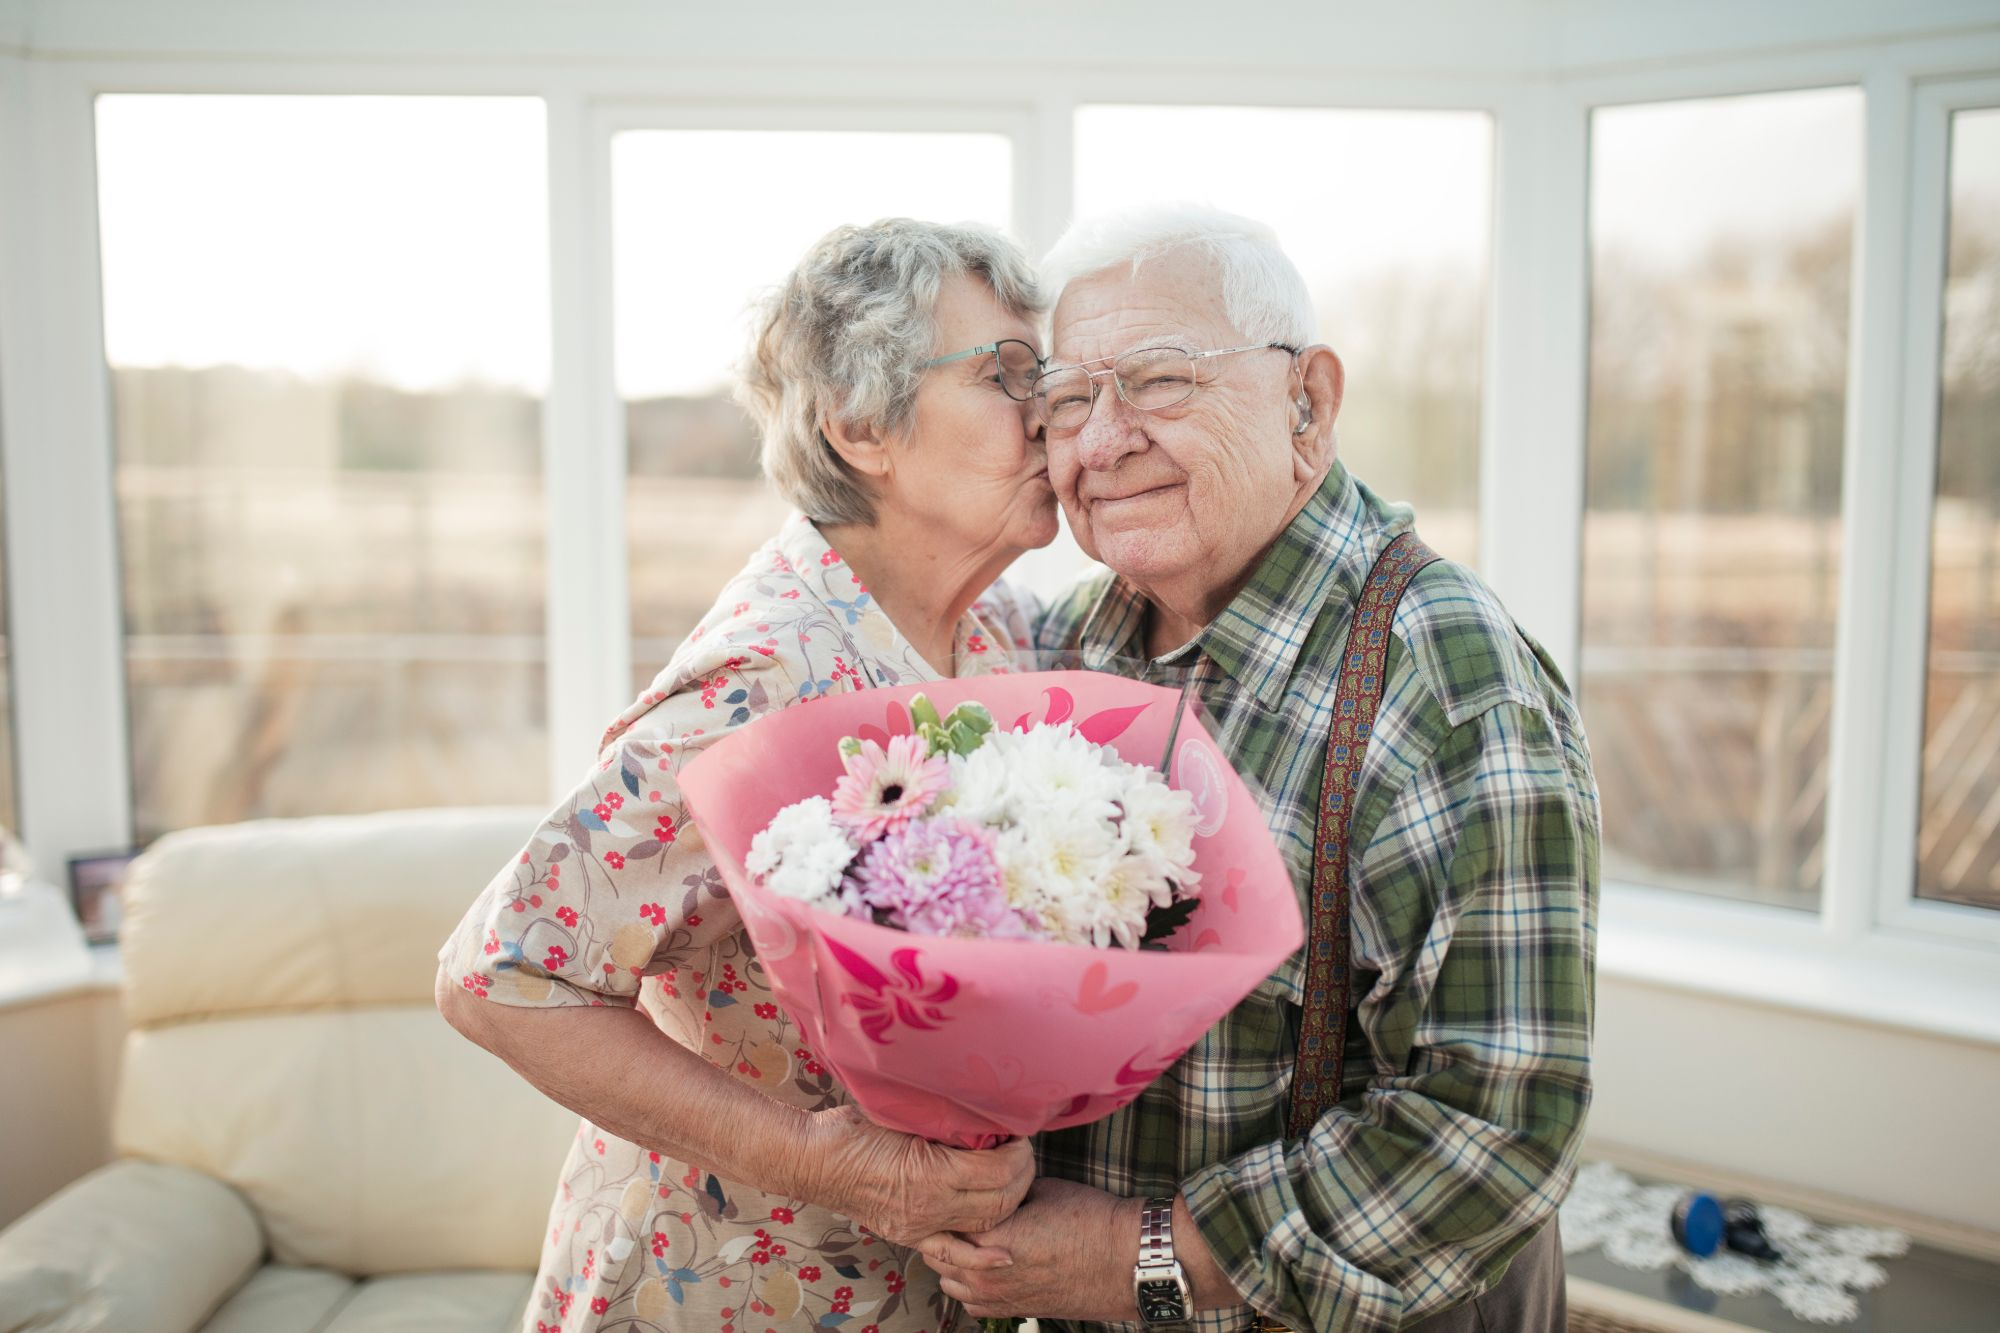 Senior aged female gives a kiss on the cheek to older male while they hold a flower bouquet in front of a large window